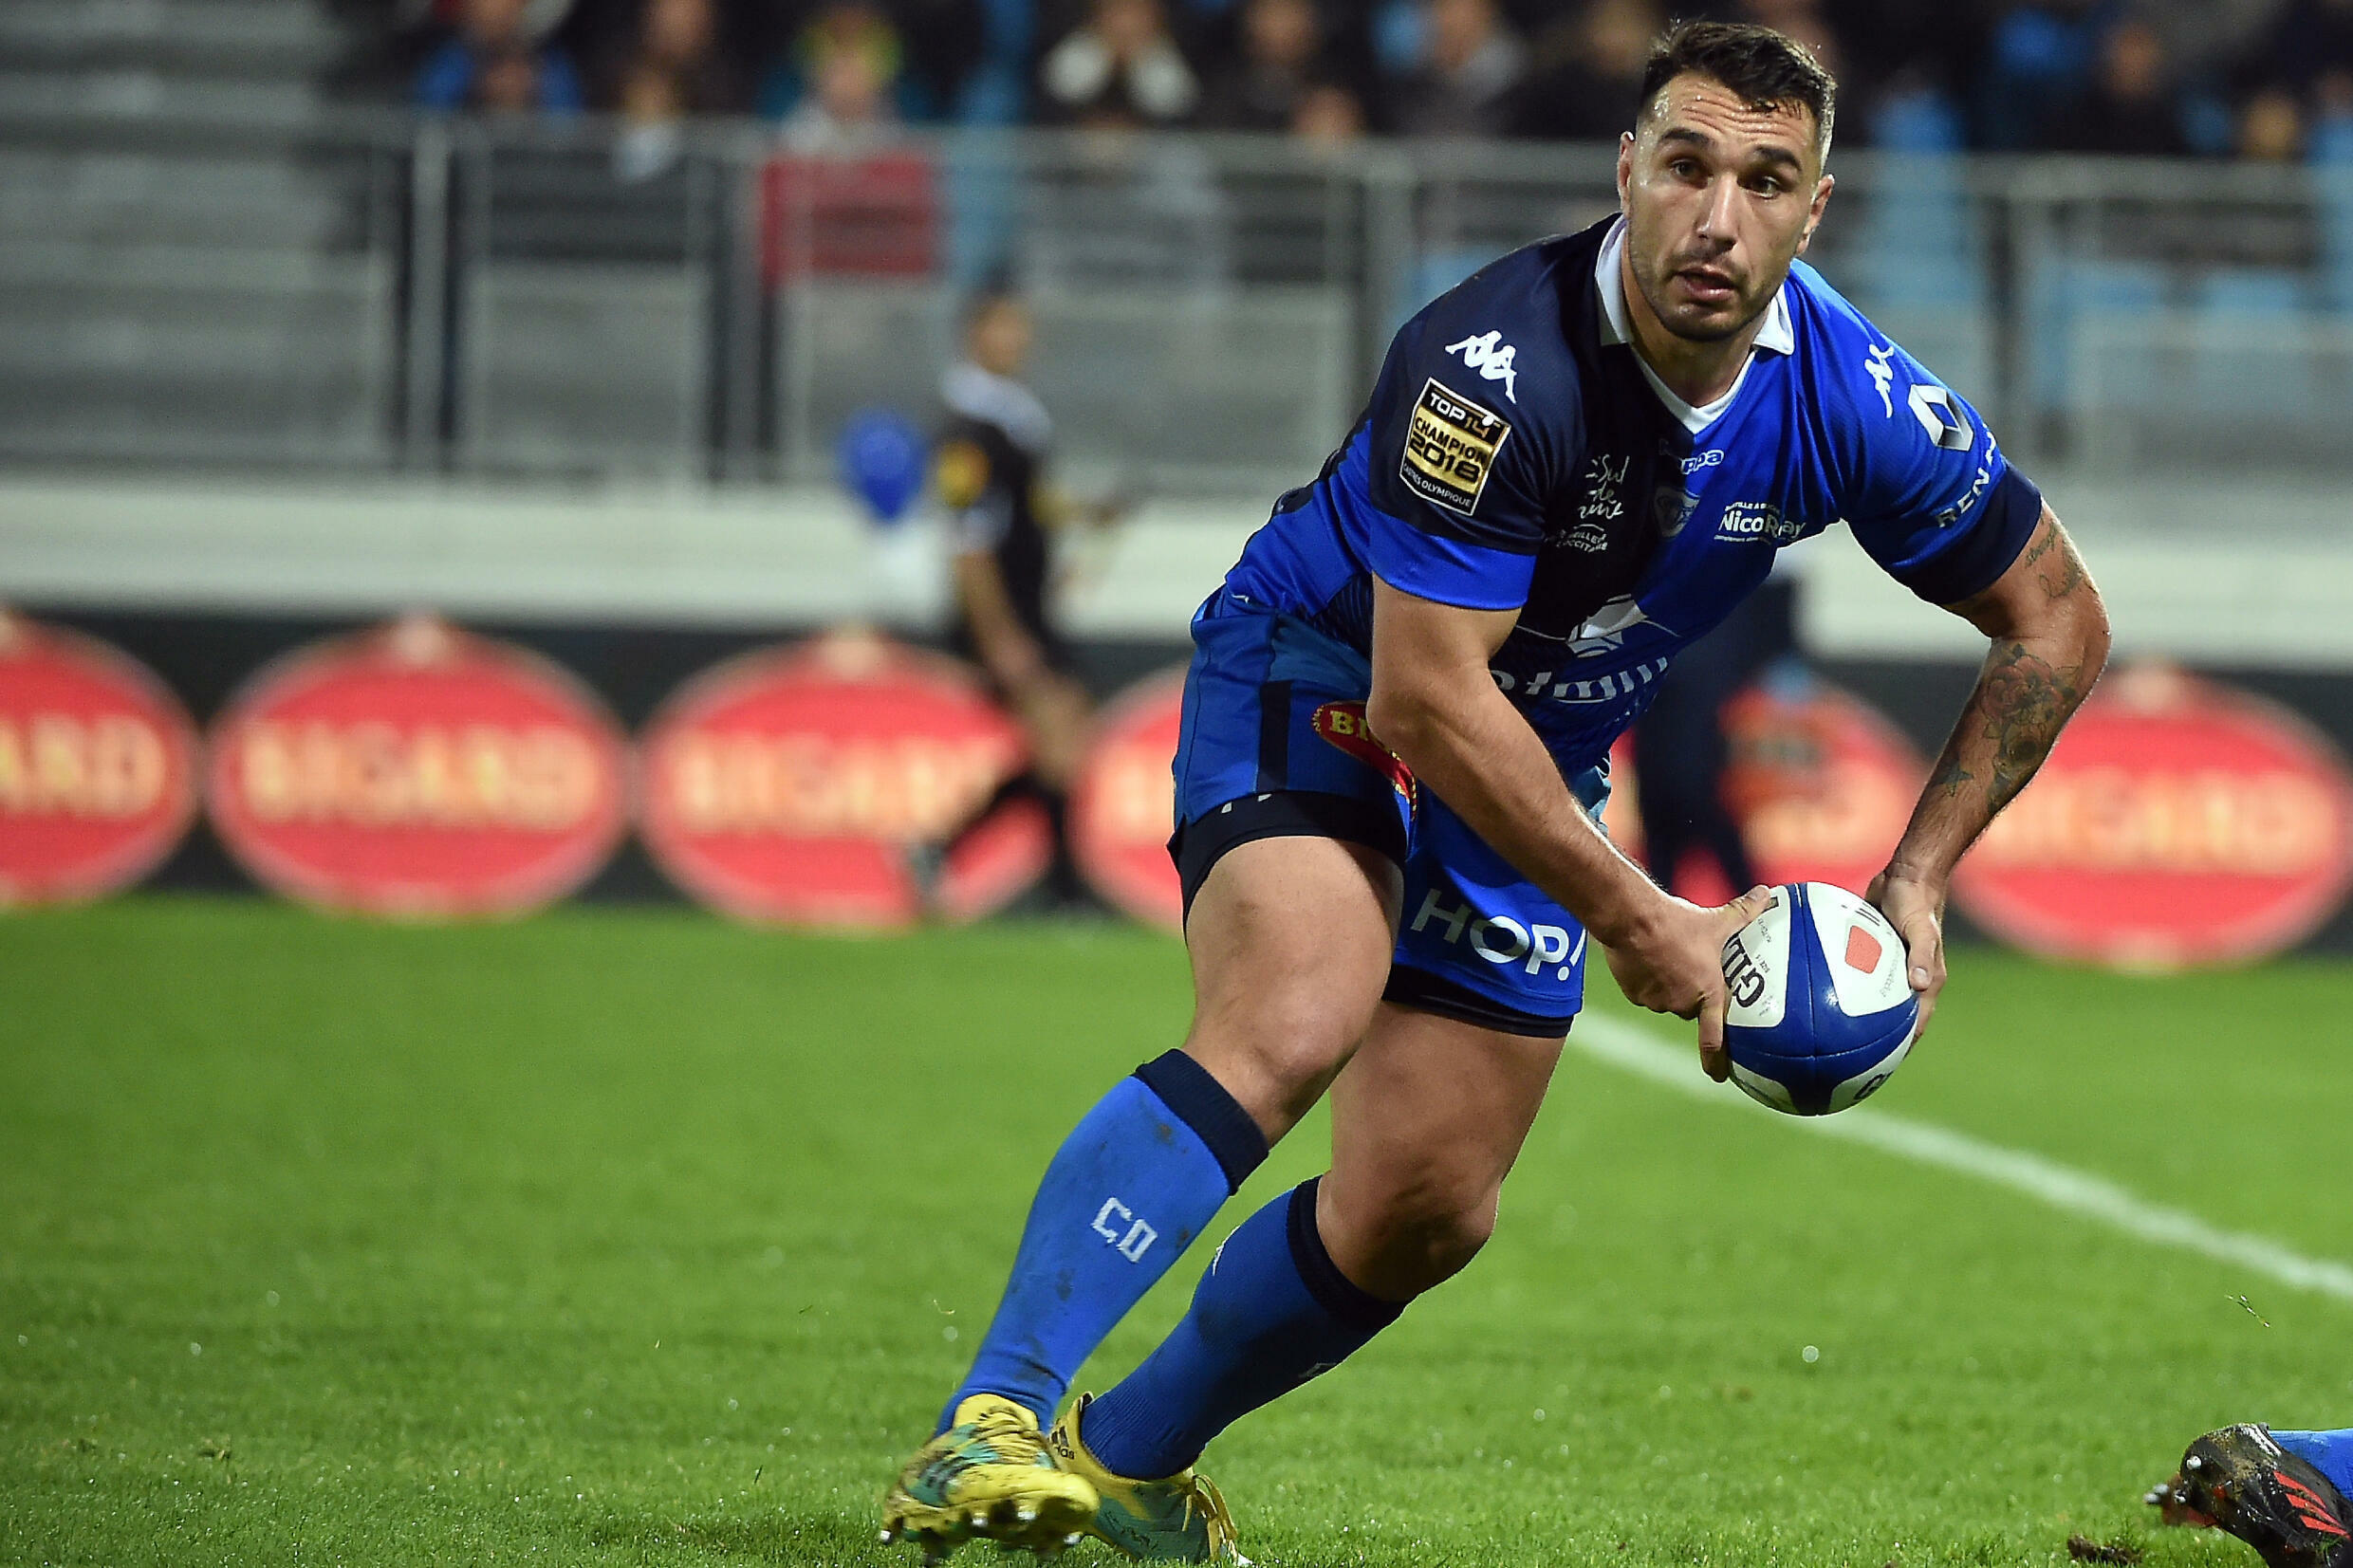 Ludovic Radosavljevic won the French Top 14 with Castres in 2018